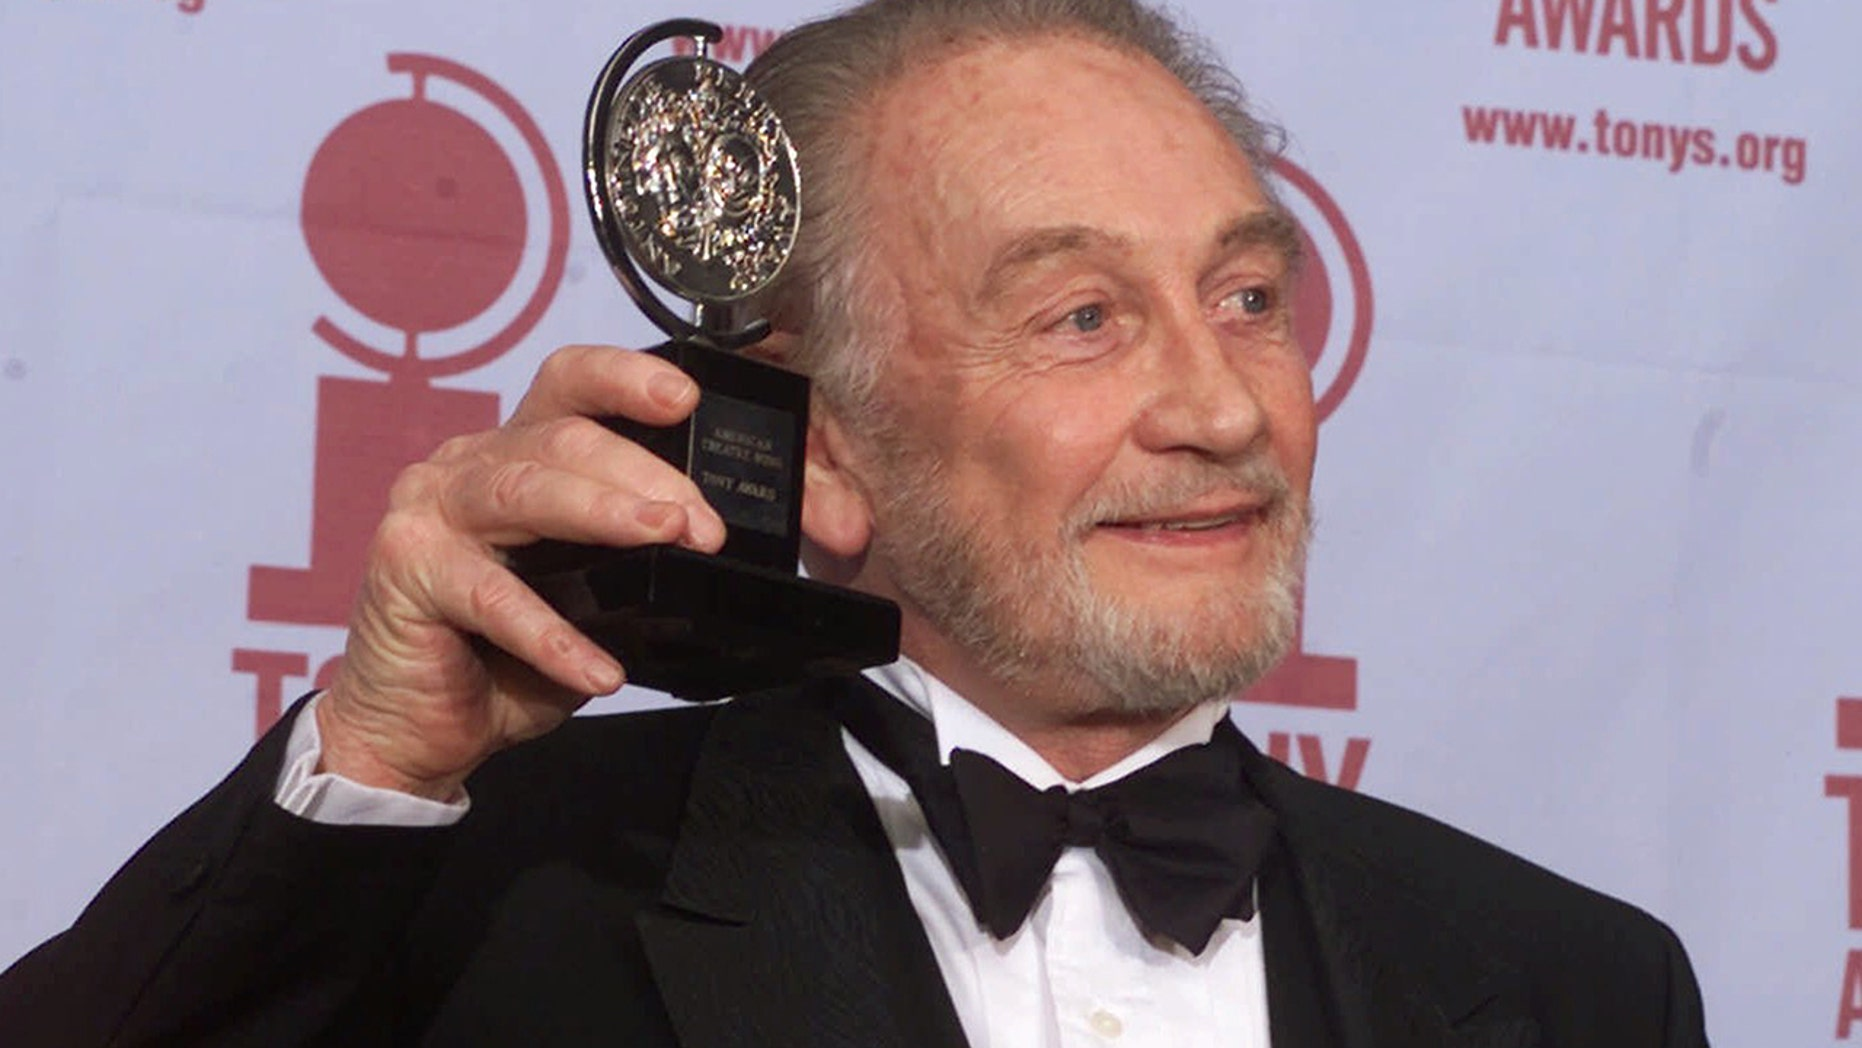 """In this file photo dated Sunday, June 4, 2000, Roy Dotrice poses with his Tony award for Best Featured Actor in a Play for his work in """"A Moon For The Misbegotten,"""" at the 54th annual Tony Awards ceremony in New York. The family of veteran British actor Roy Dotrice said Monday Oct. 16, 2017, that he has died aged 94, in his London home."""